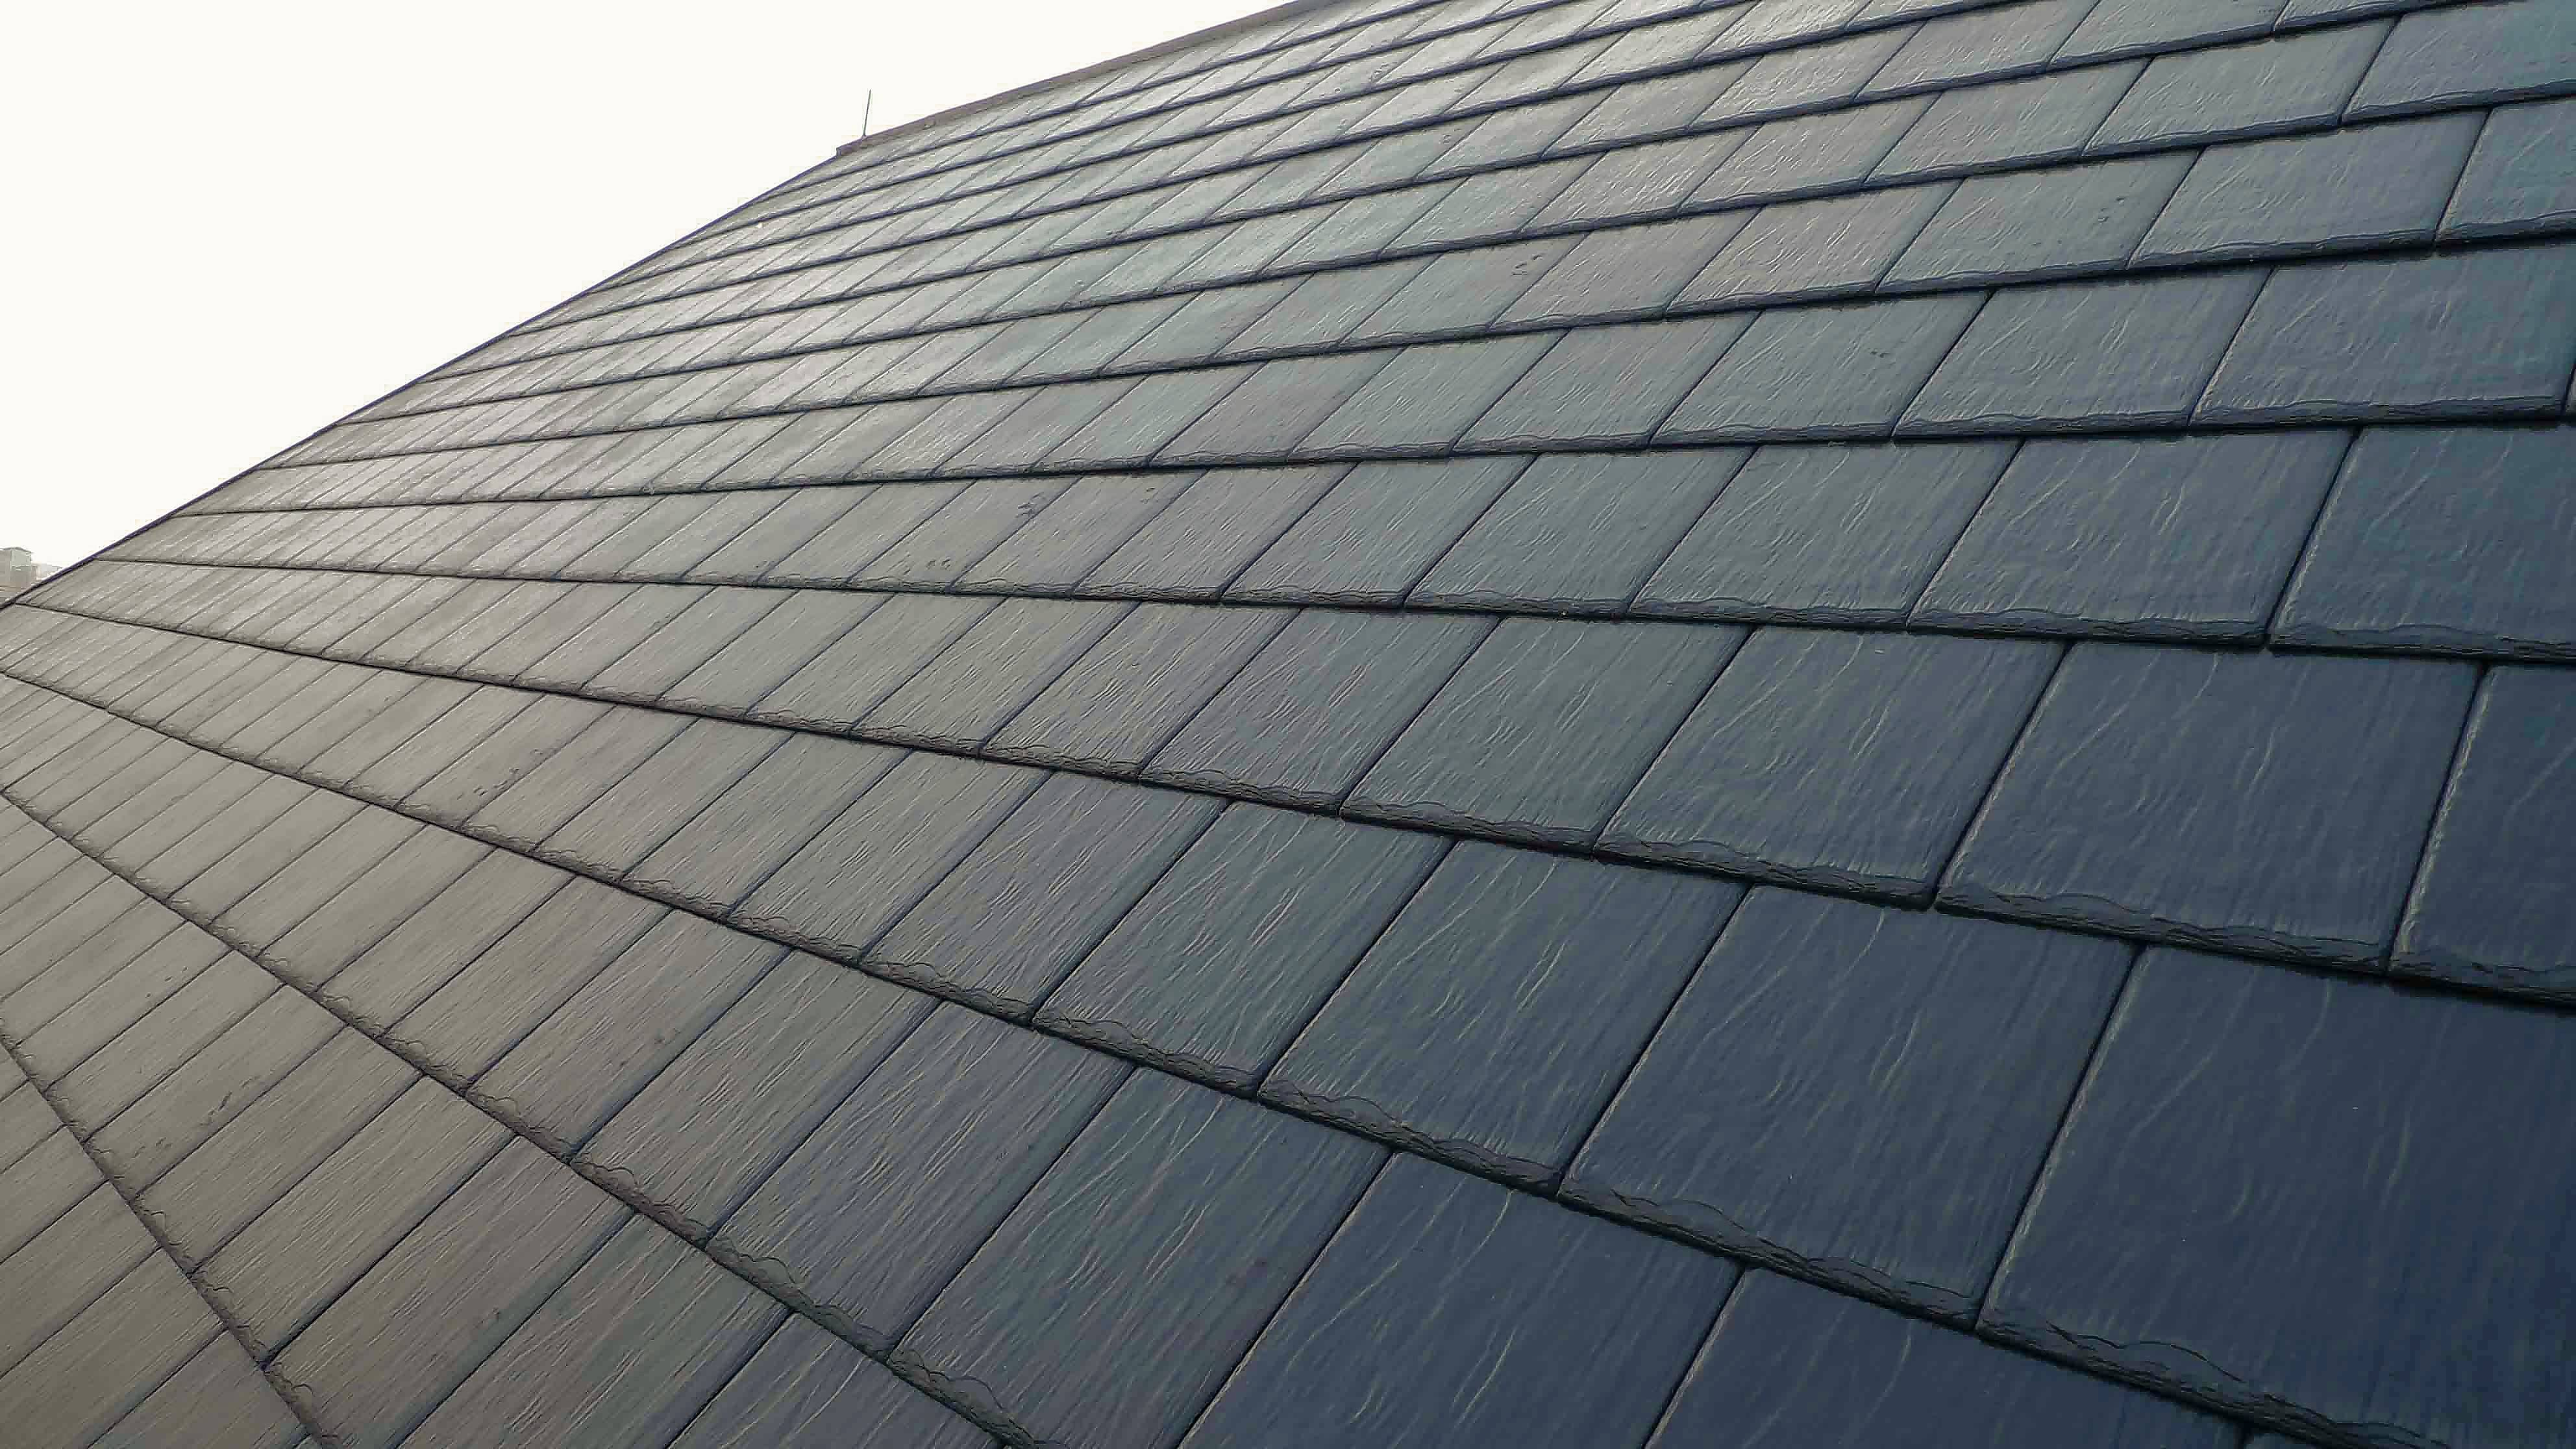 Synthetic slate tiles are being made now to replicate the durability of older slate products.